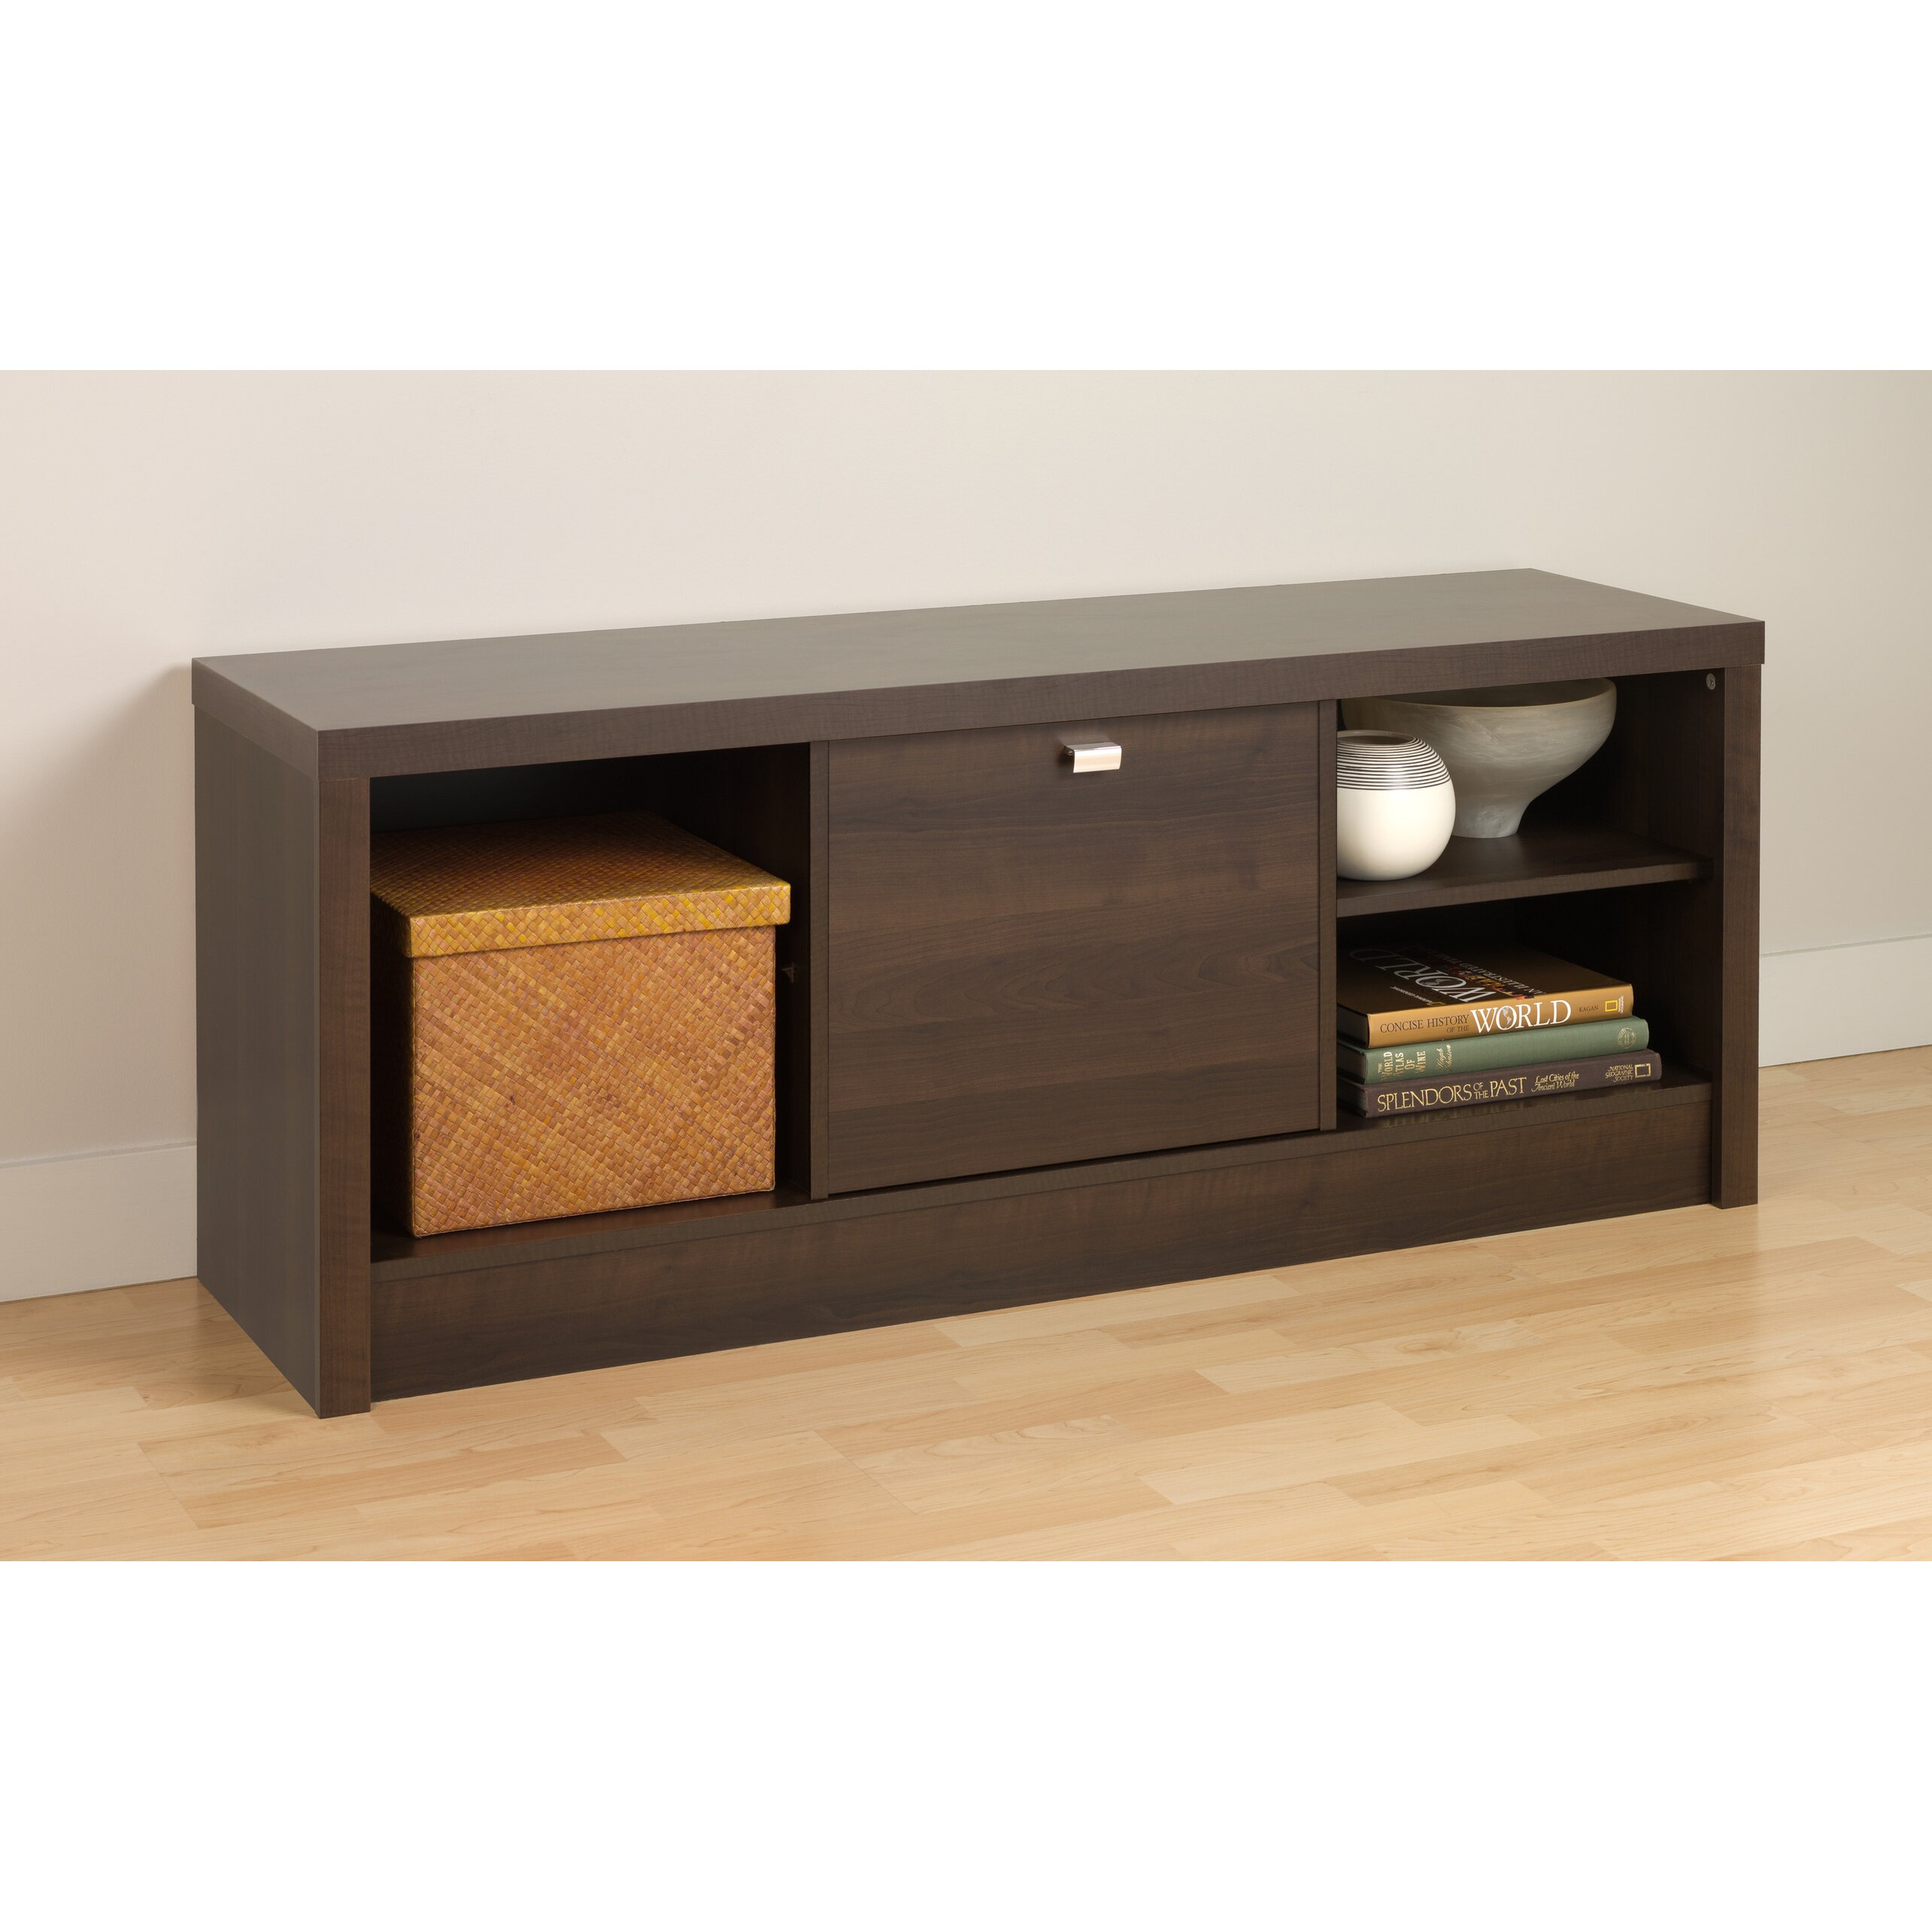 Prepac Bedroom Cubbie Storage Bench Reviews Wayfair